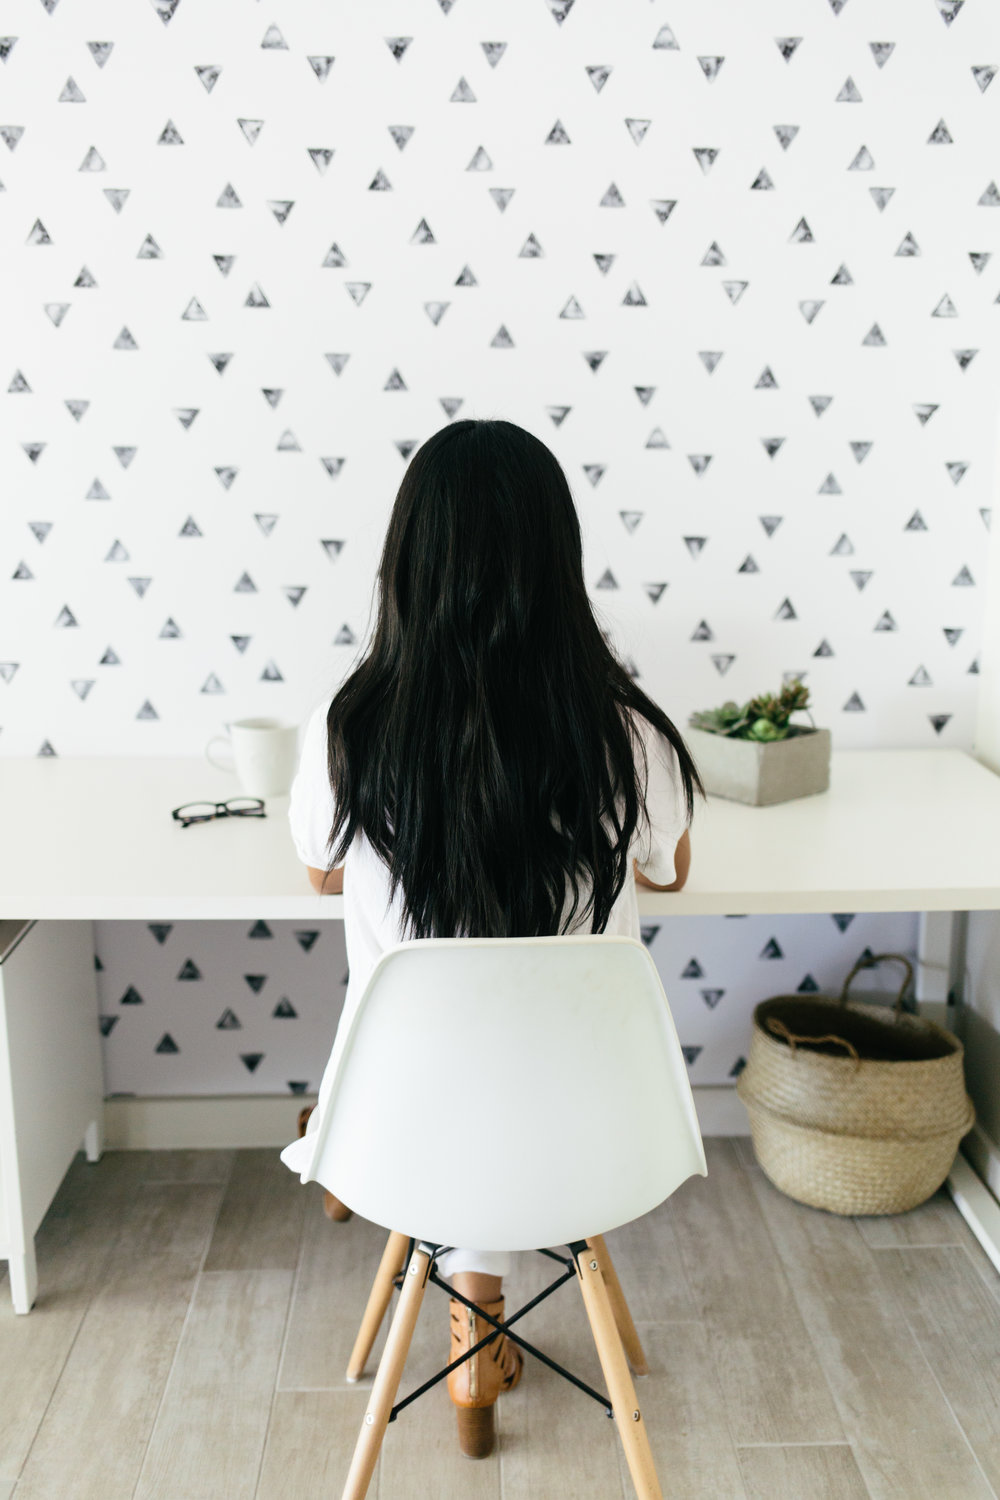 bloguettes-stockthatrocks-office-22Boss+Babe+Club+Top+Knot+Tuesday+Video+Equipment